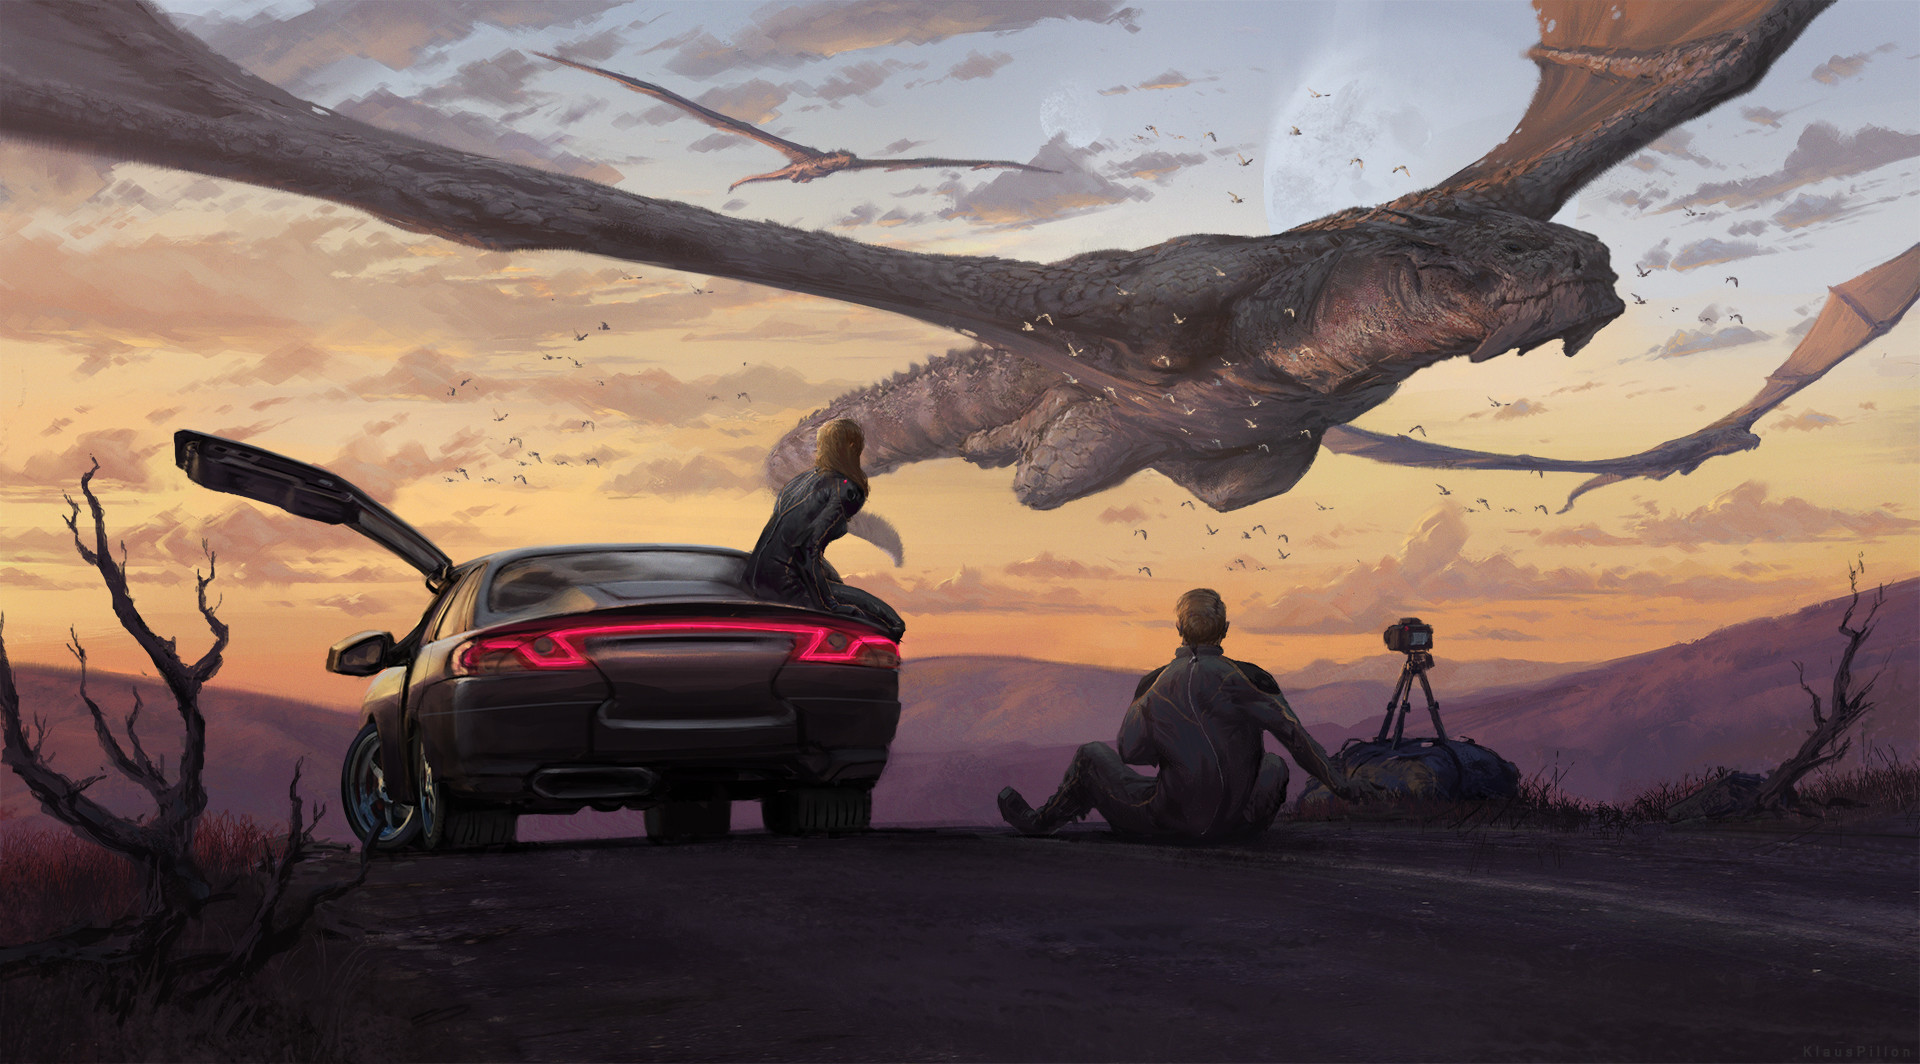 Klaus pillon klauspillon dragons sightseeing final